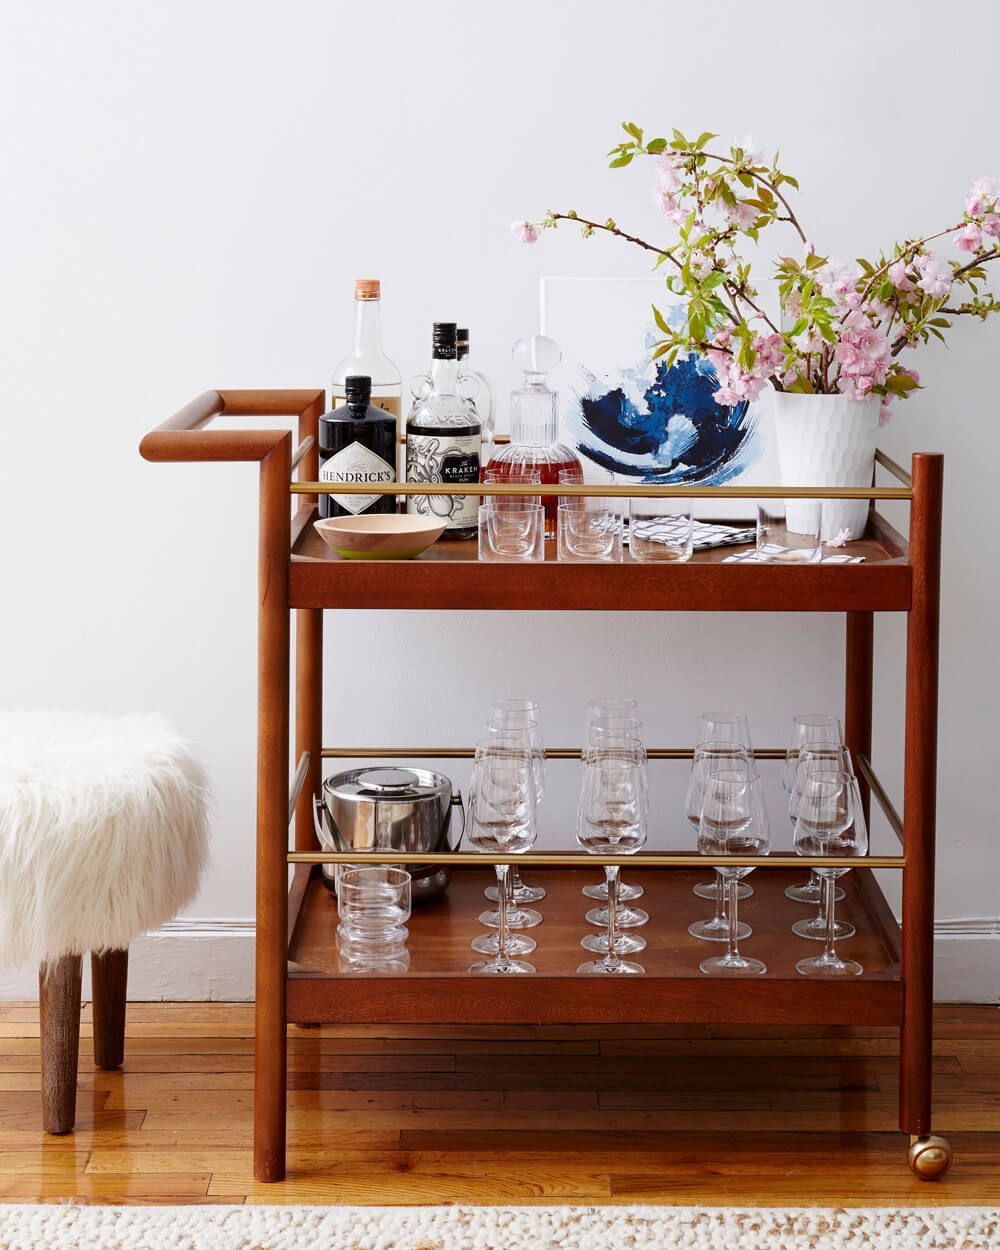 The Best Dining Room Lighting Ideas Fall In Love With This Mid Century Dining Rooms With Unique Mid Century Lighting Des Bar Cart Decor Gold Bar Cart Bar Cart